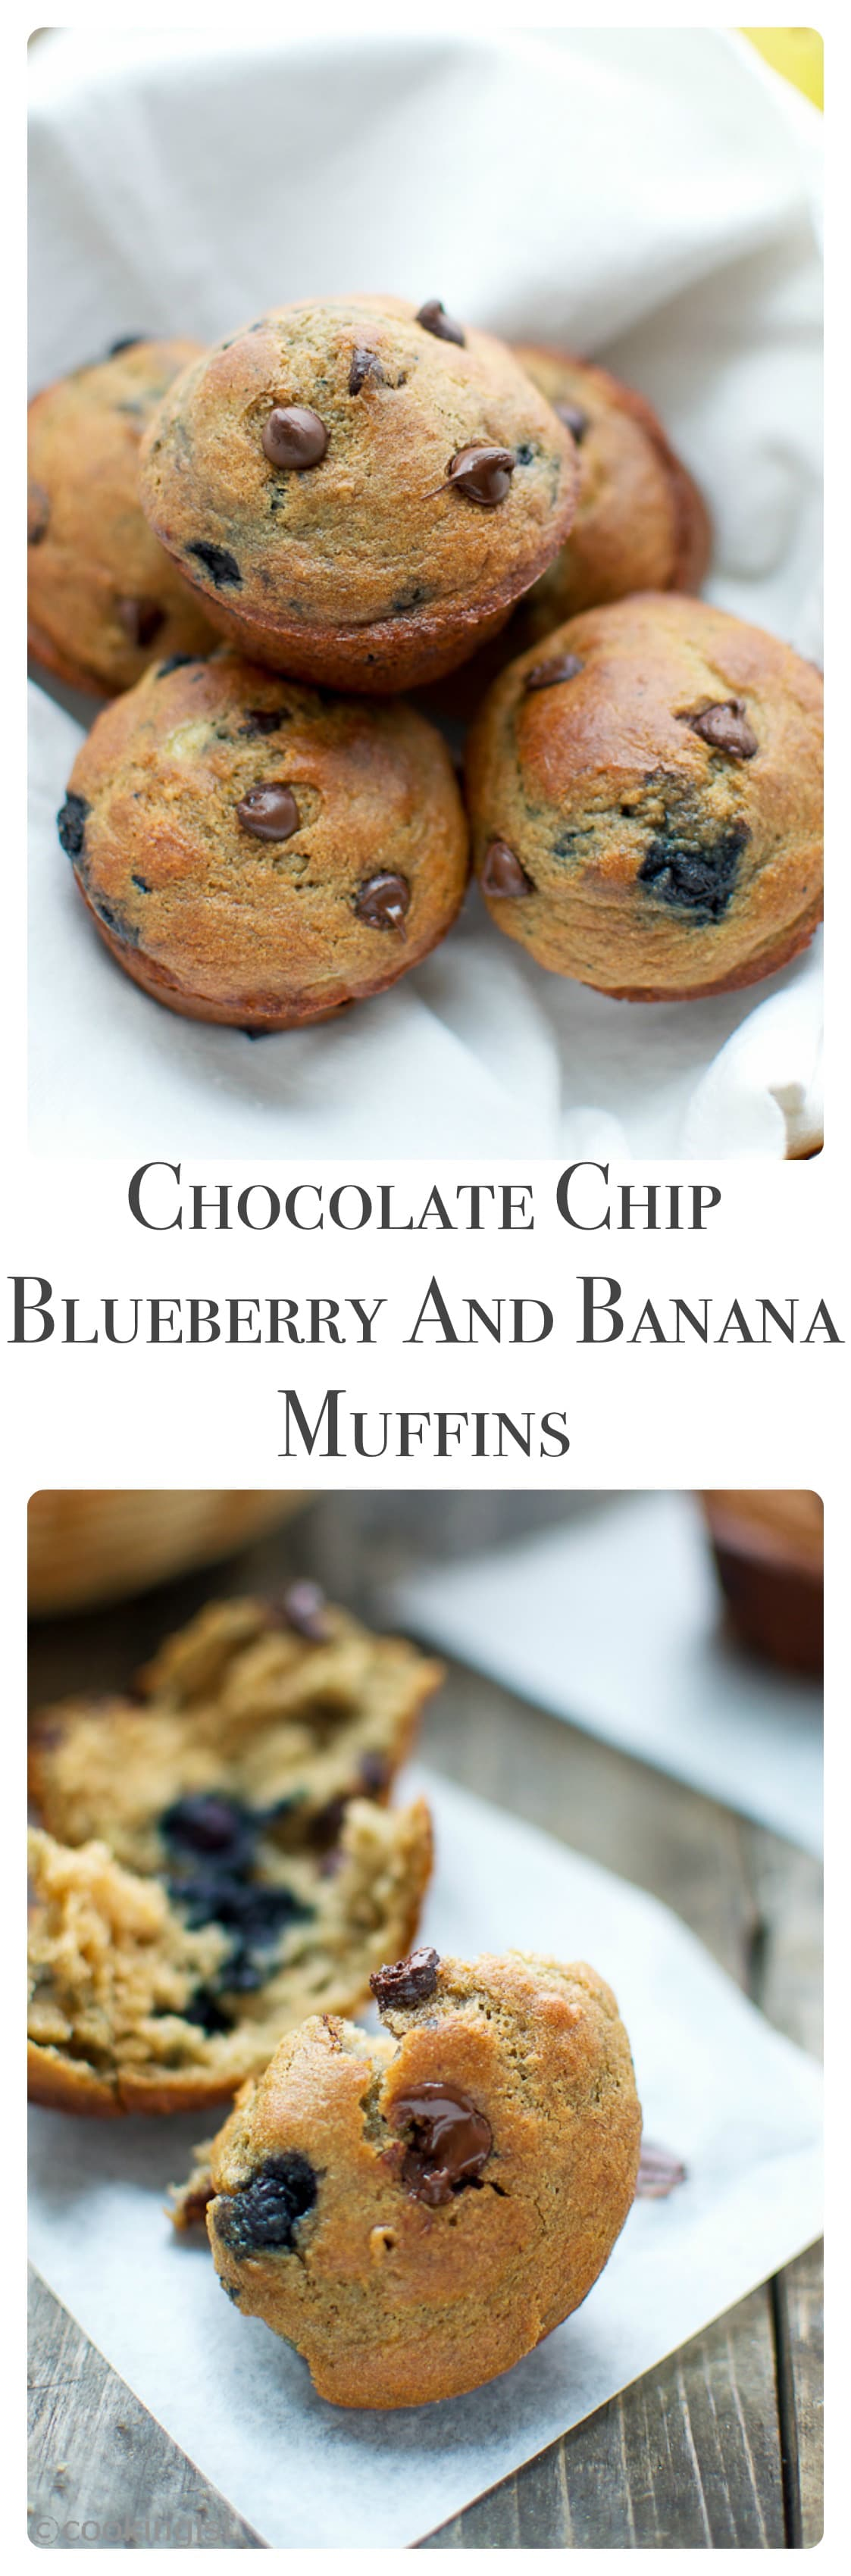 Chocolate-Chip-Banana-Blueberry-Muffins